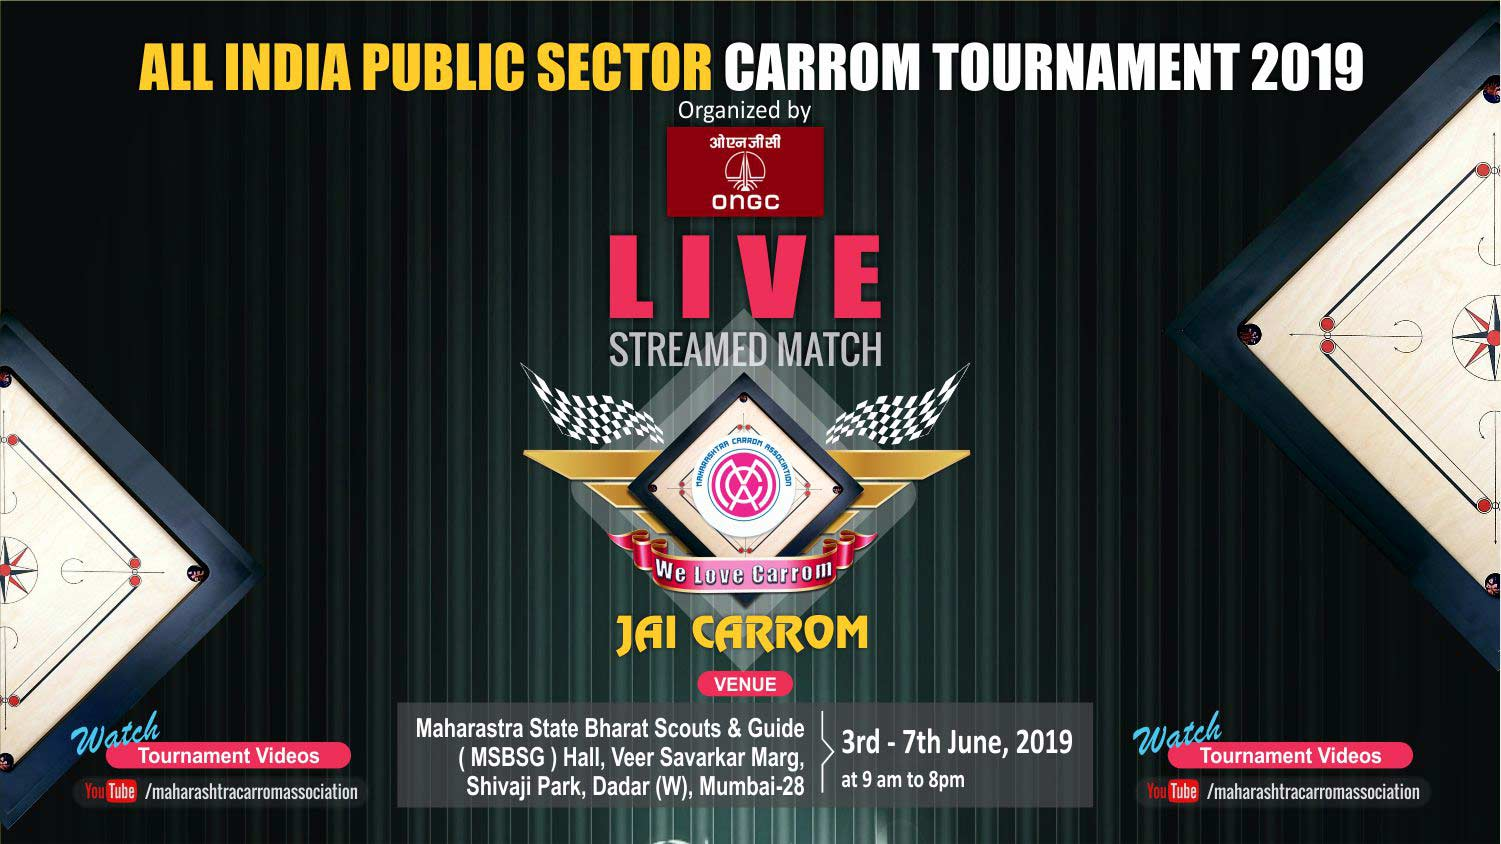 ALL INDIA PUBLIC SECTOR CARROM TOURNAMENT 2019